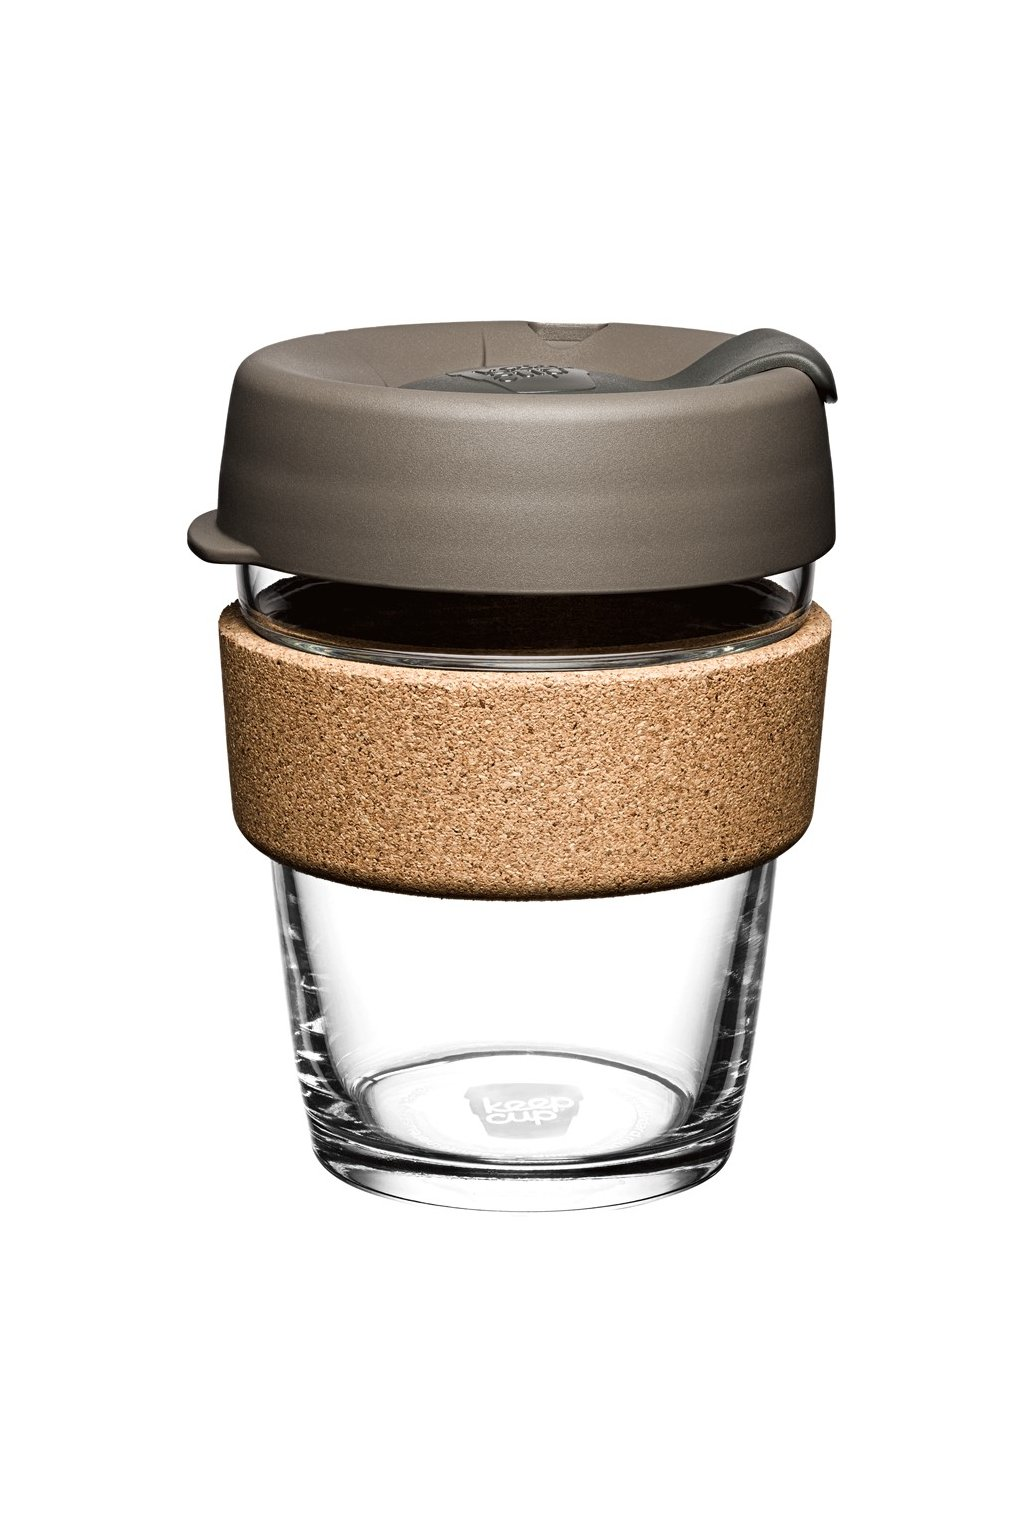 KeepCup Brew Cork LATTE 340 ml